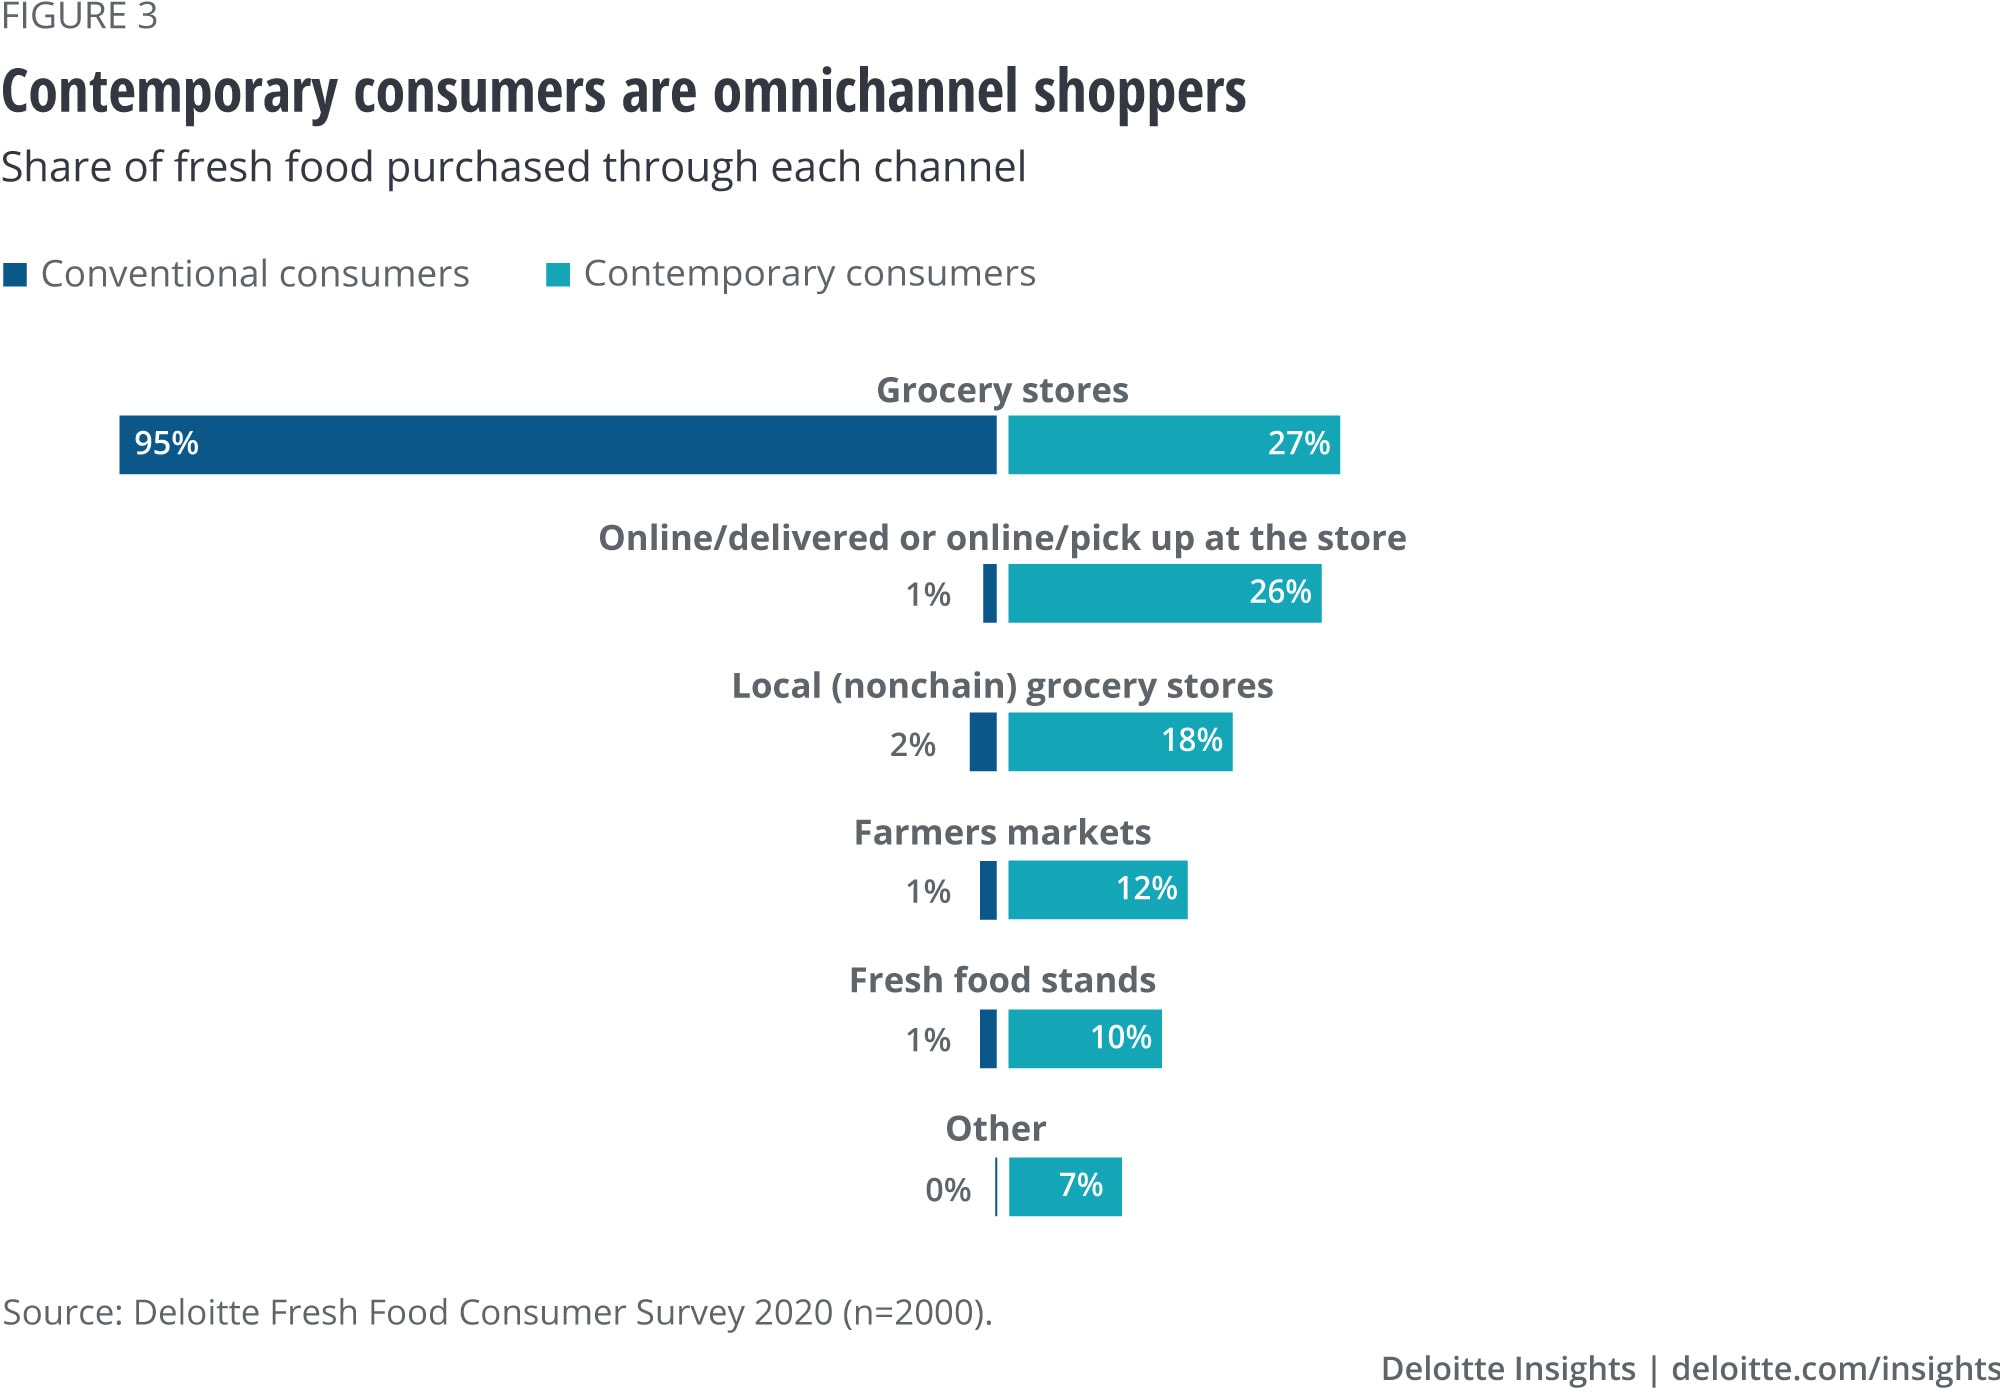 Contemporary consumers are truly omni-channel shoppers